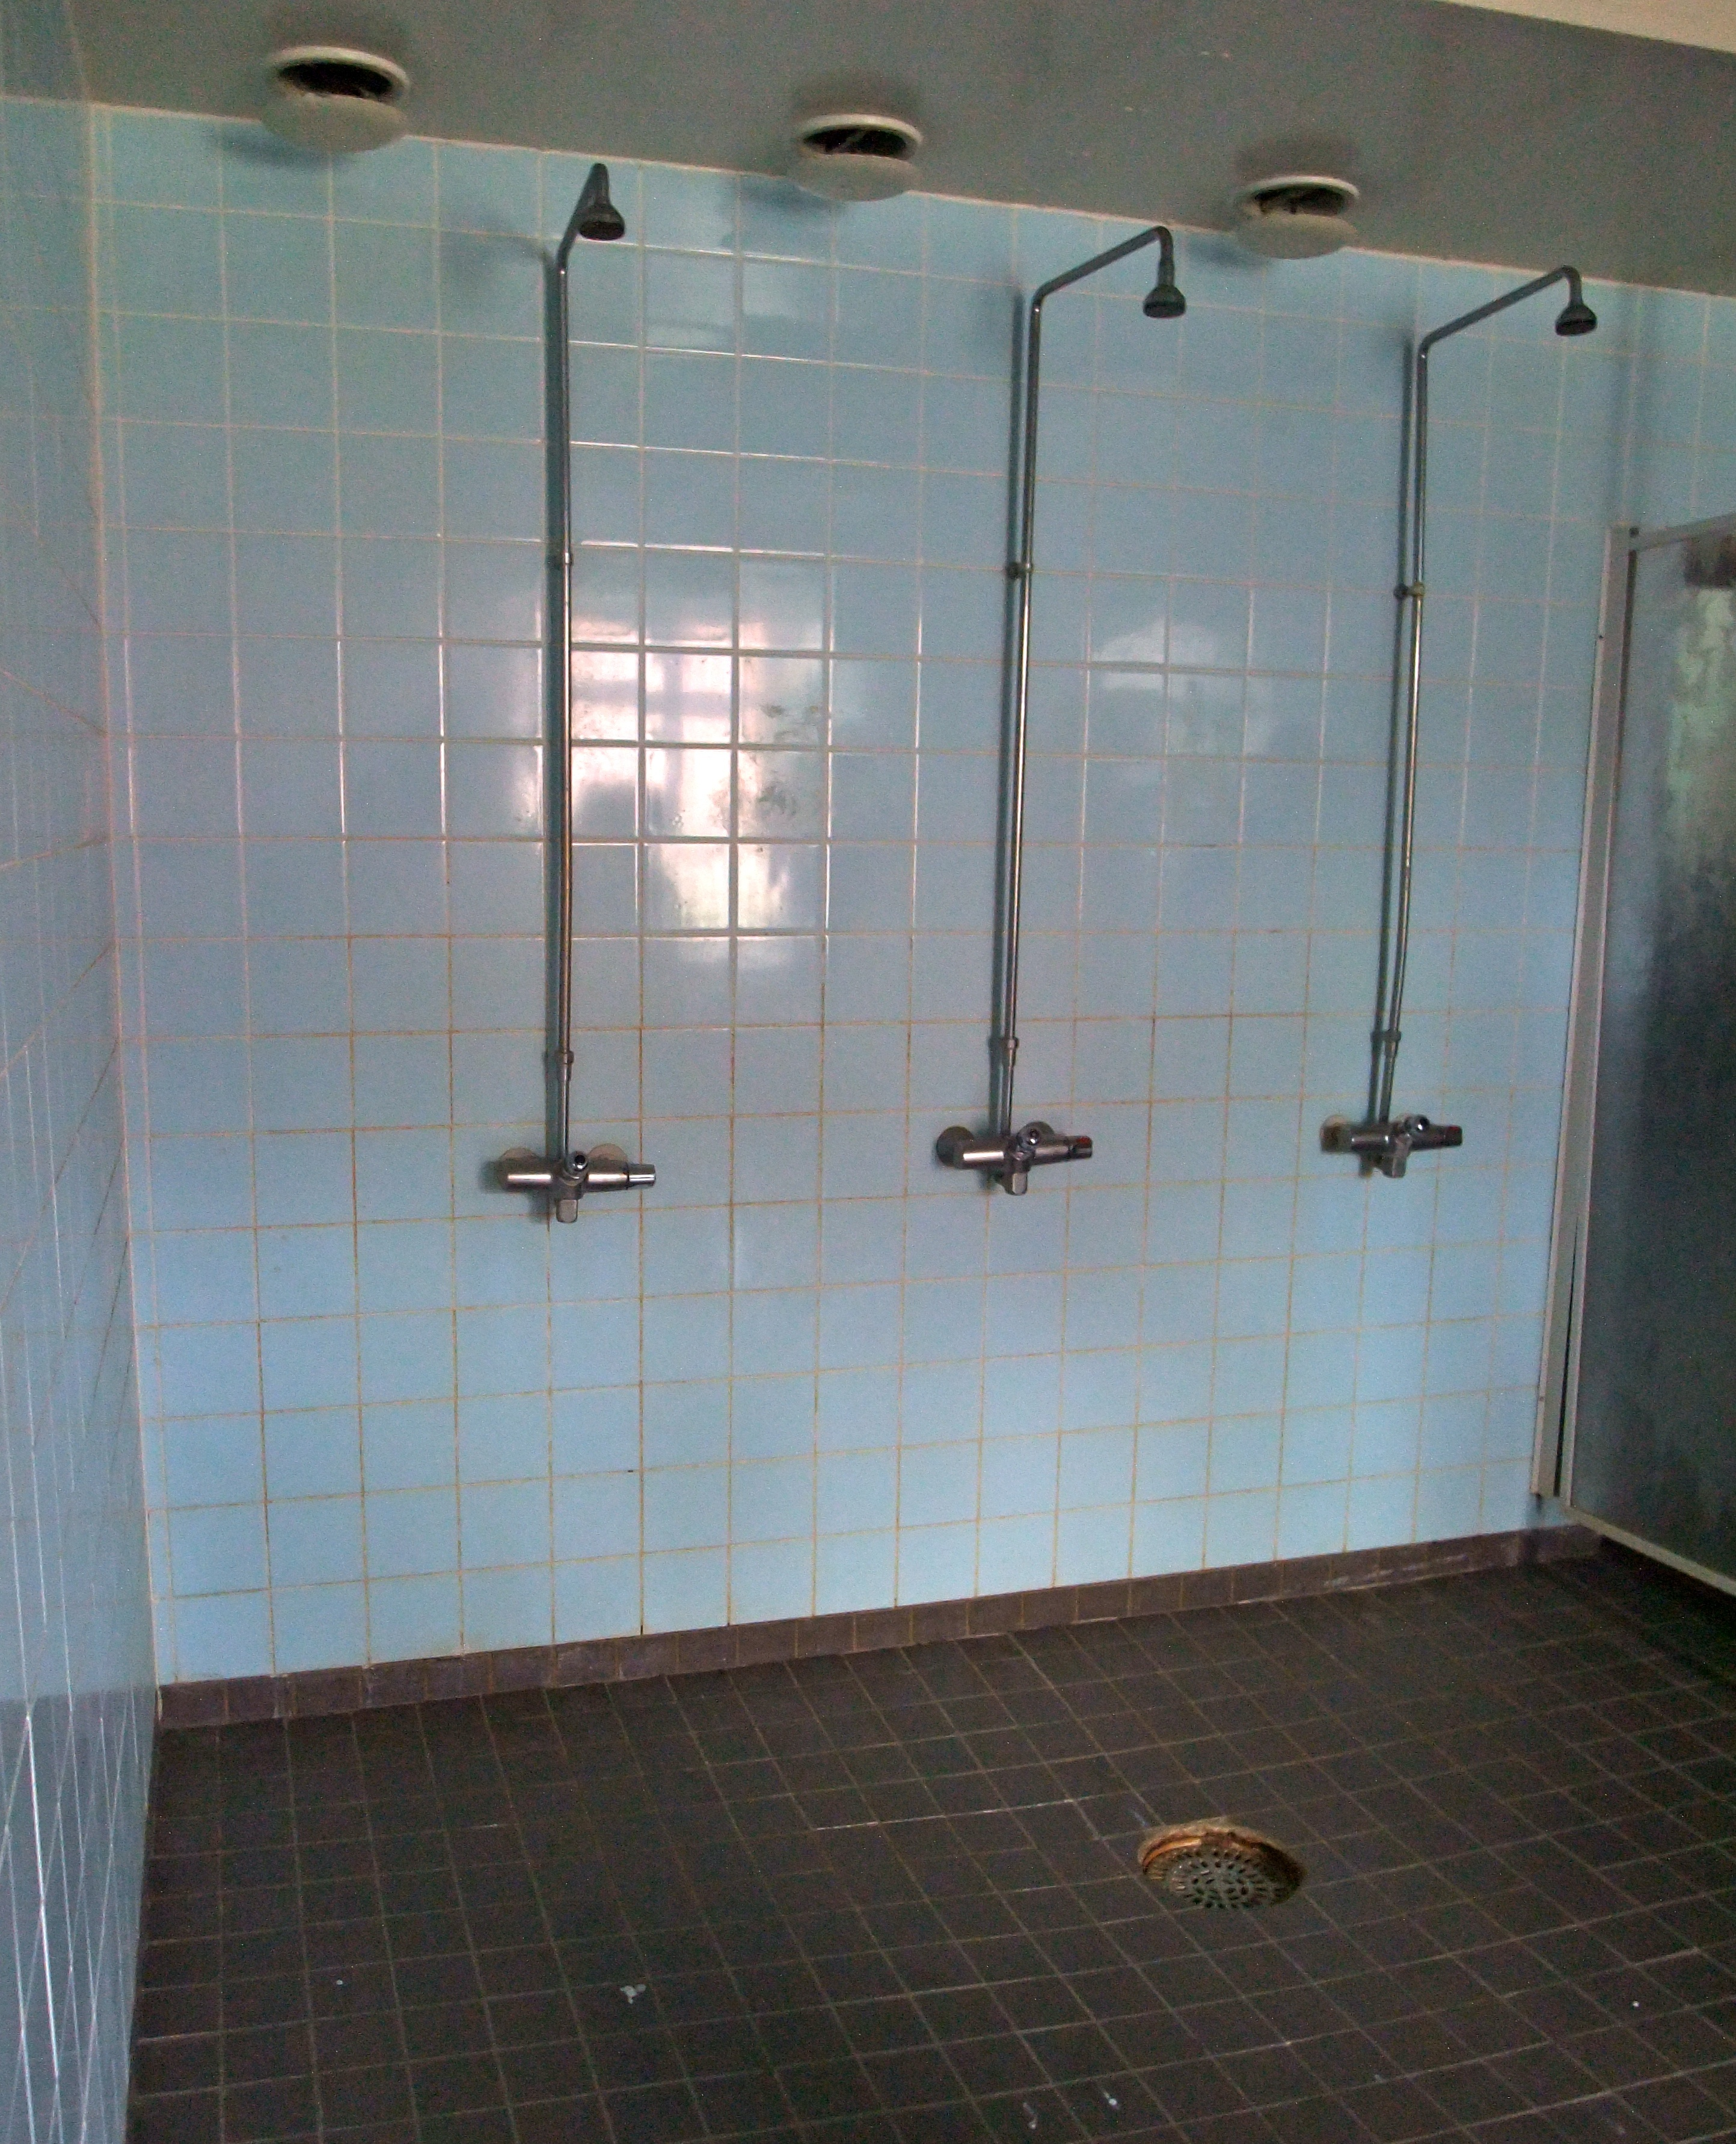 Shower Rooms With Wood Affect Walls